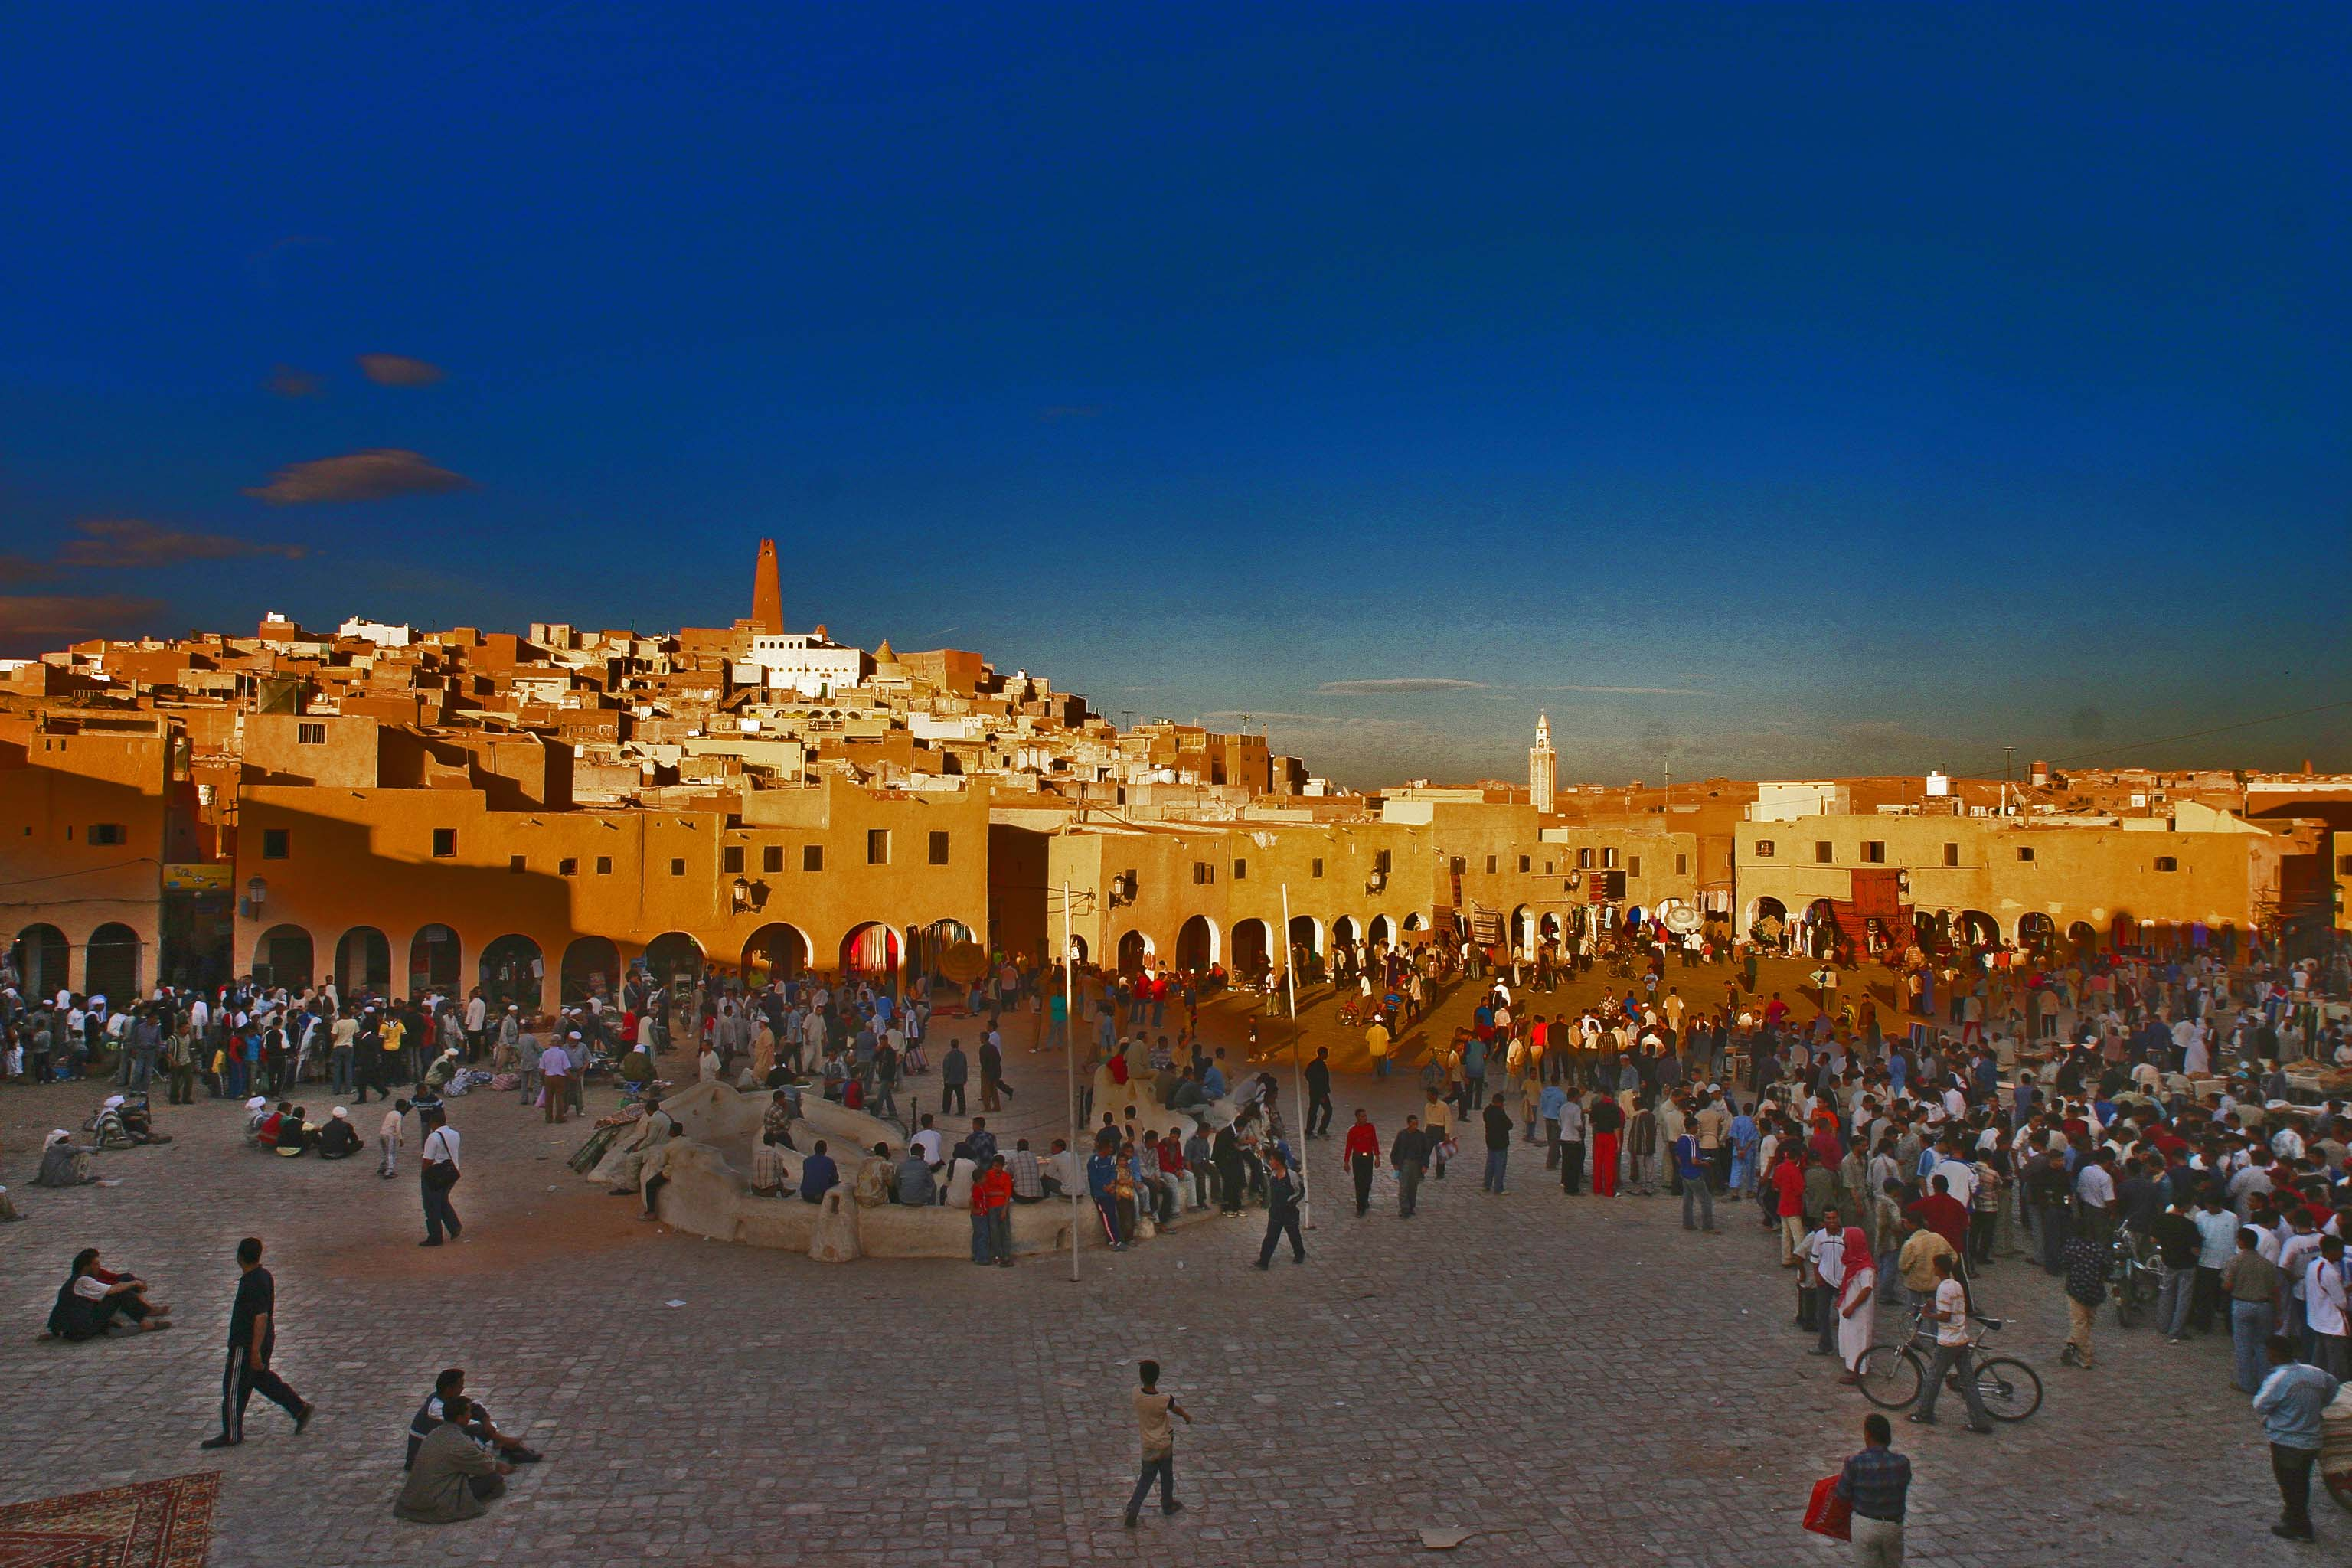 The square,Ghardaia